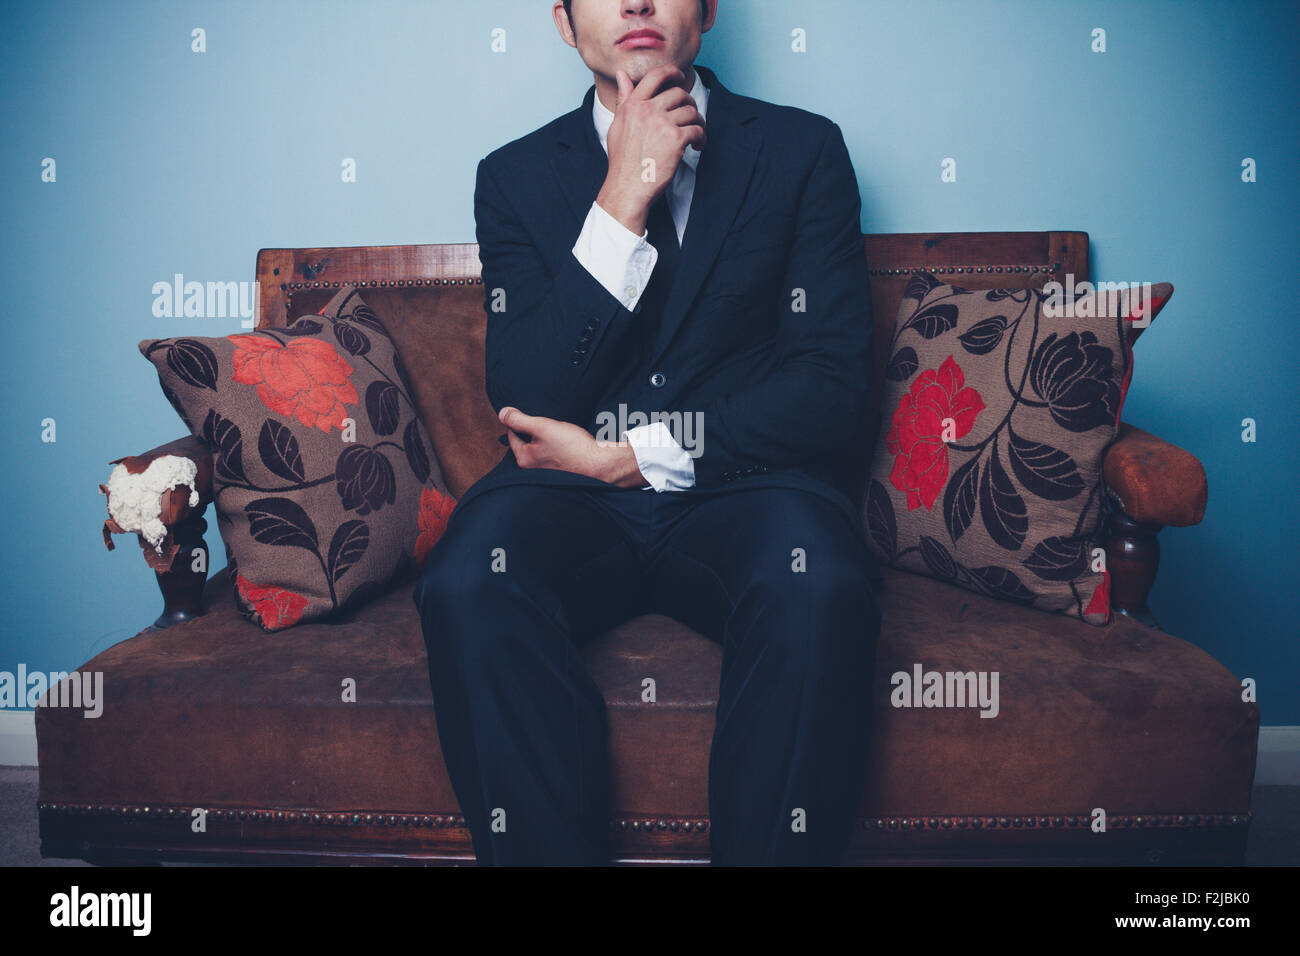 Thoughtful young businessman sitting on sofa - Stock Image